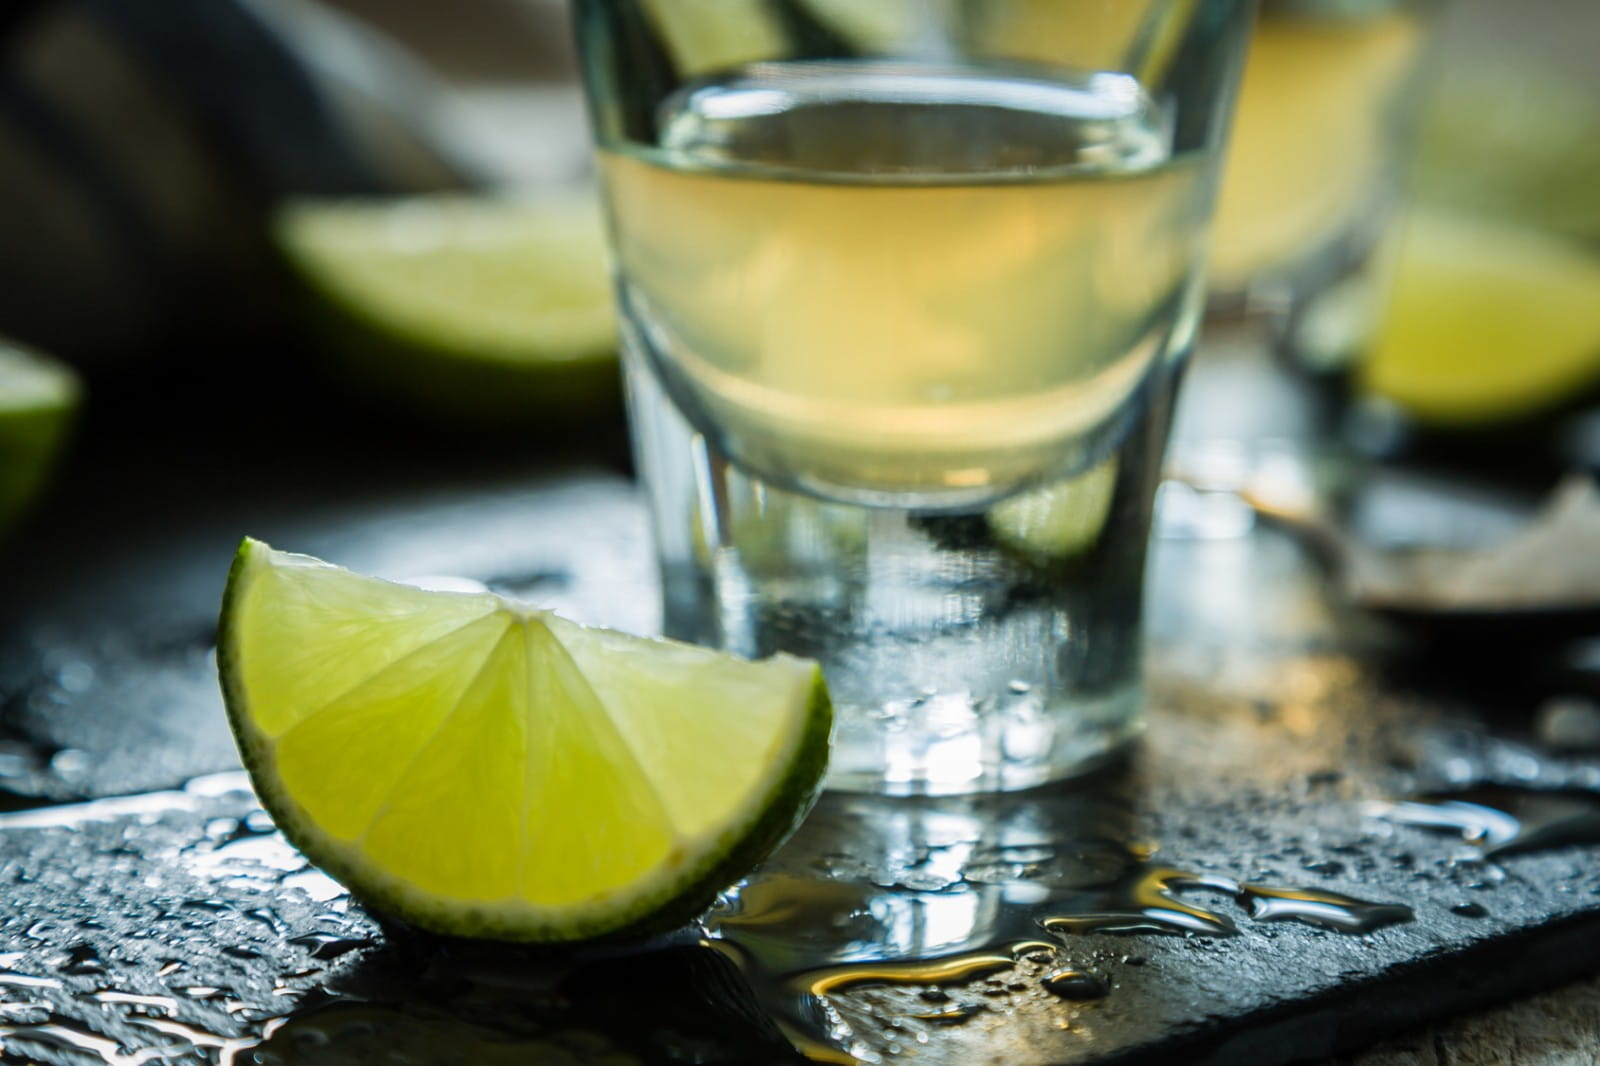 Some great food pairings for tequila